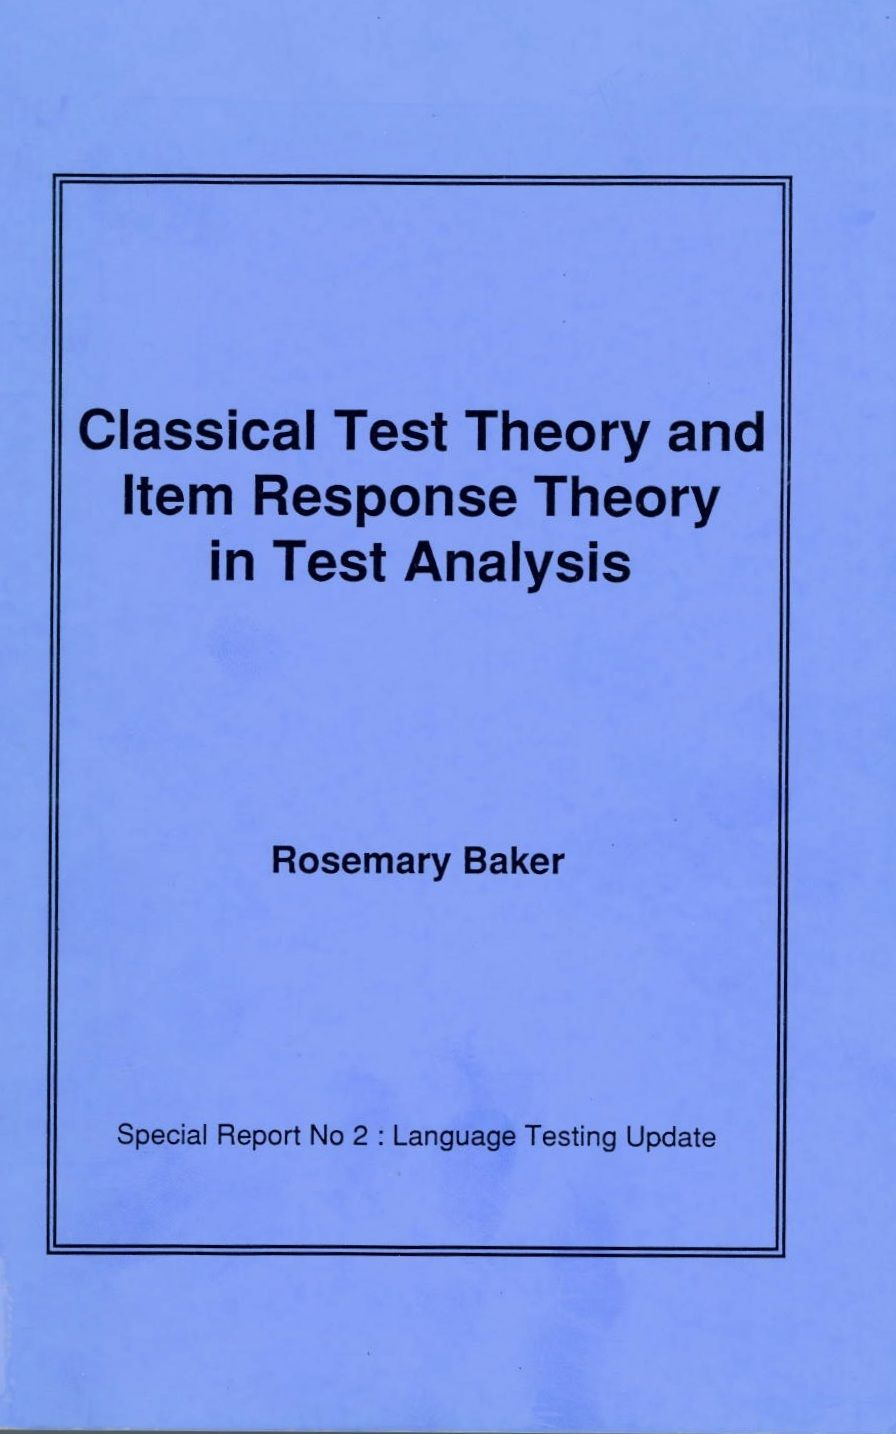 Classical test theory and item response theory in test analysis : extracts from, an investigation of the rasch model in its application to foreign language proficiency testing / Rosemary Baker. -- Lancaster : Lancaster University, Centre for Research in Language Education, 1997 en http://absysnet.bbtk.ull.es/cgi-bin/abnetopac?TITN=541739